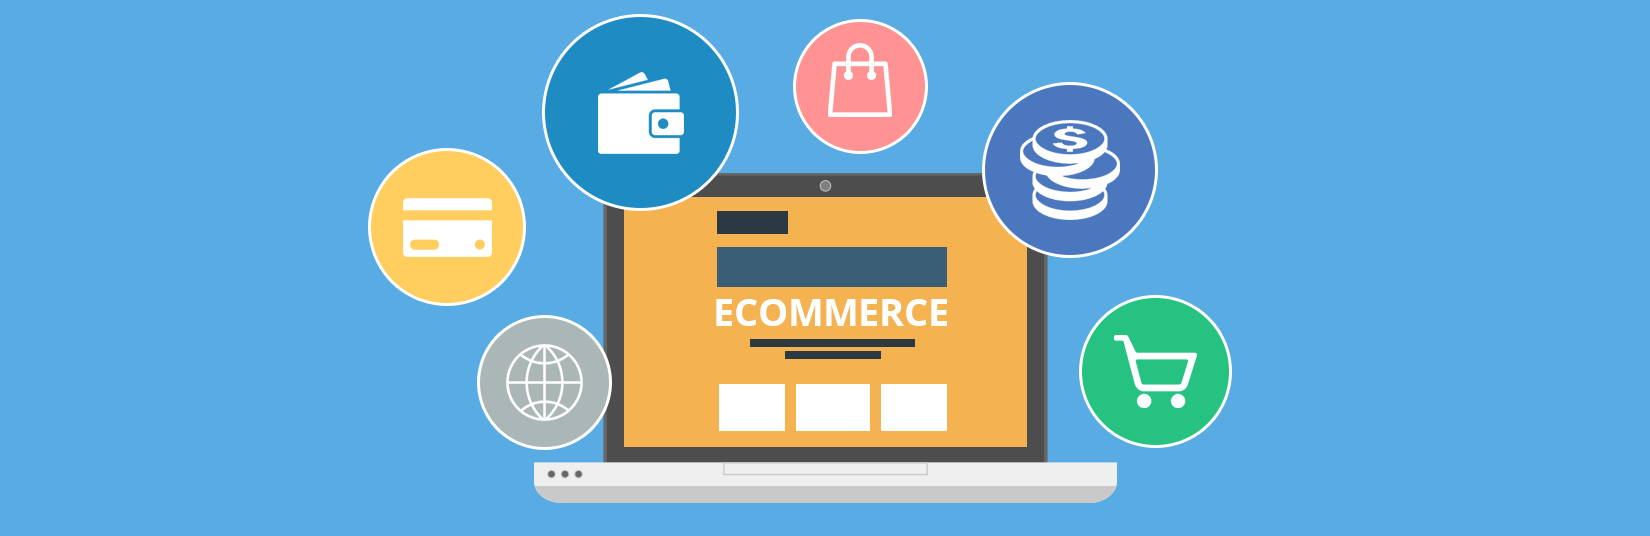 5 Ways E-commerce Will Change in 2020